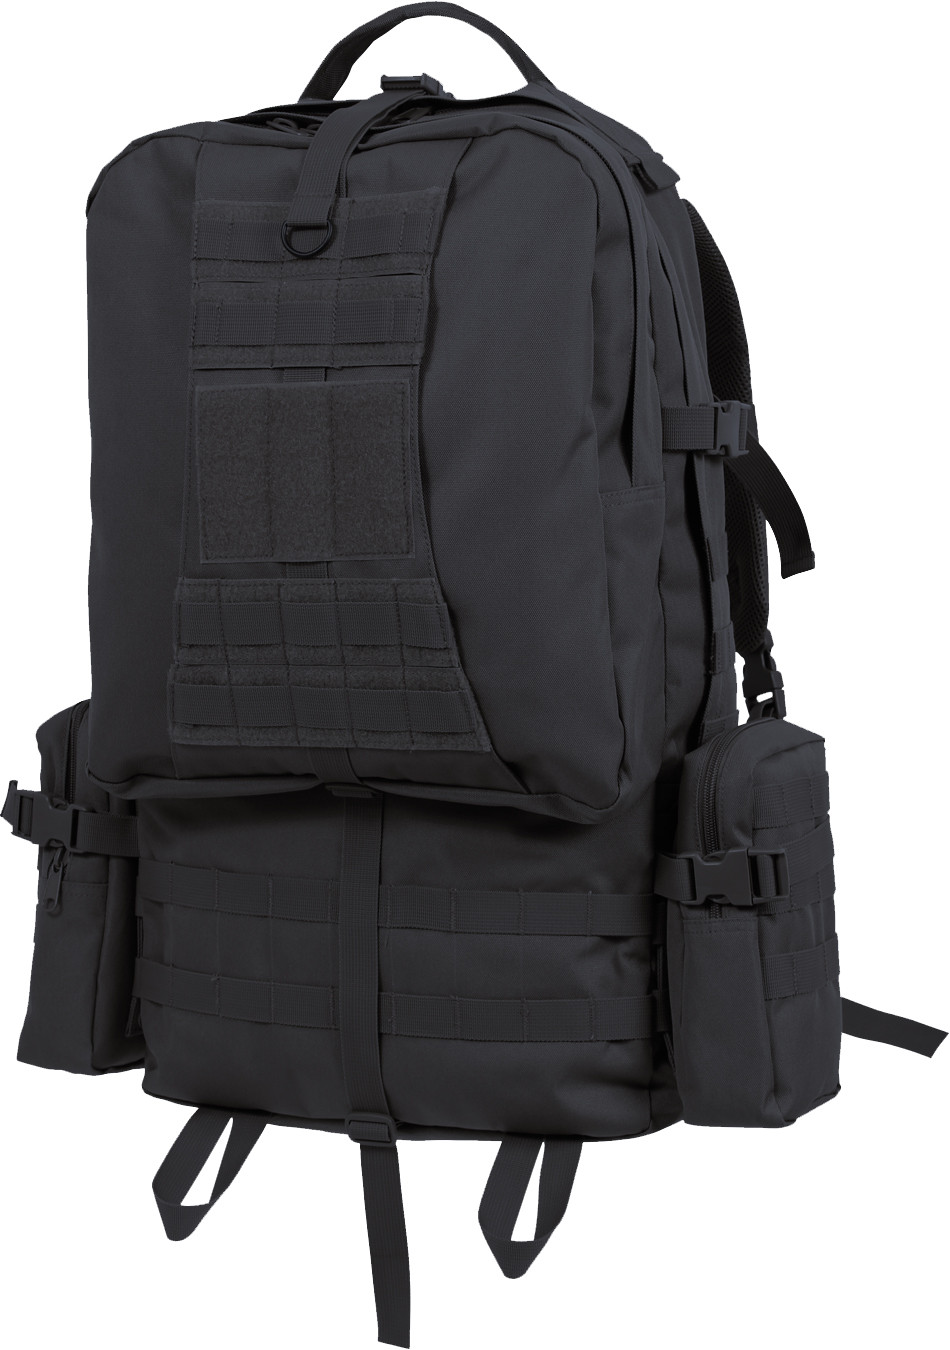 Black Military MOLLE Concealed Carry Global Tactical Assault Pack 3a8477a63d0